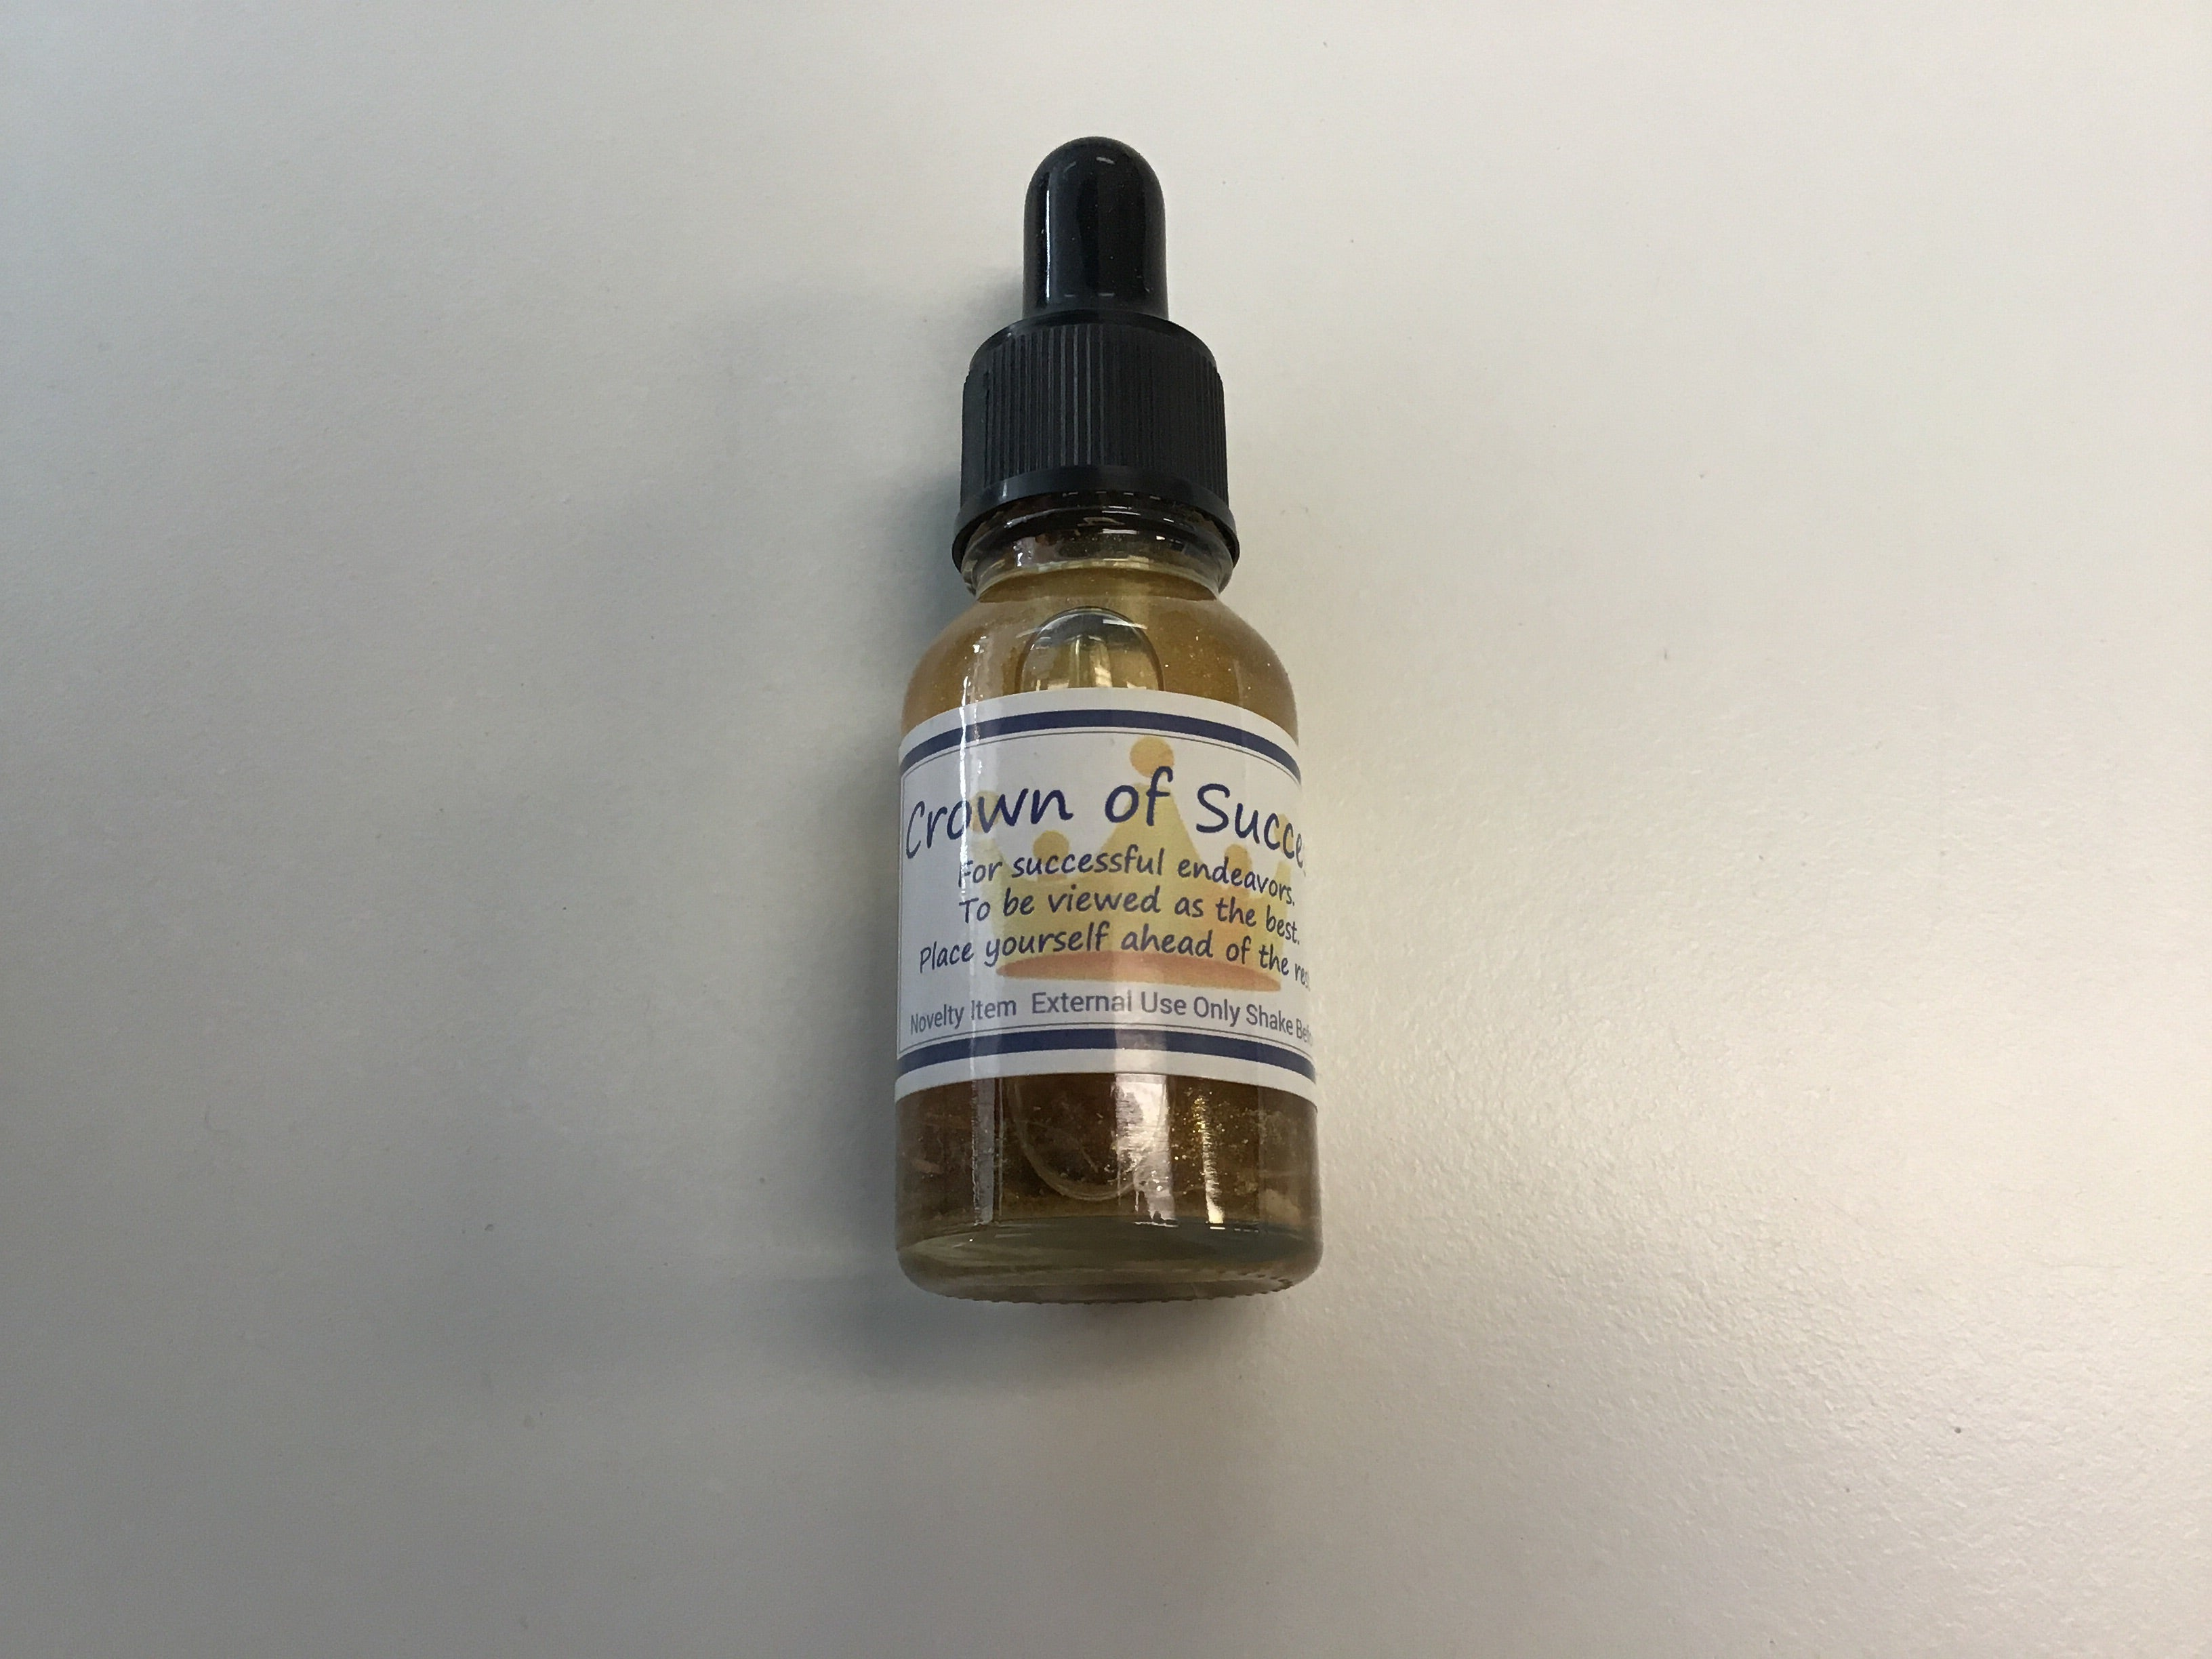 Crown of Success oil